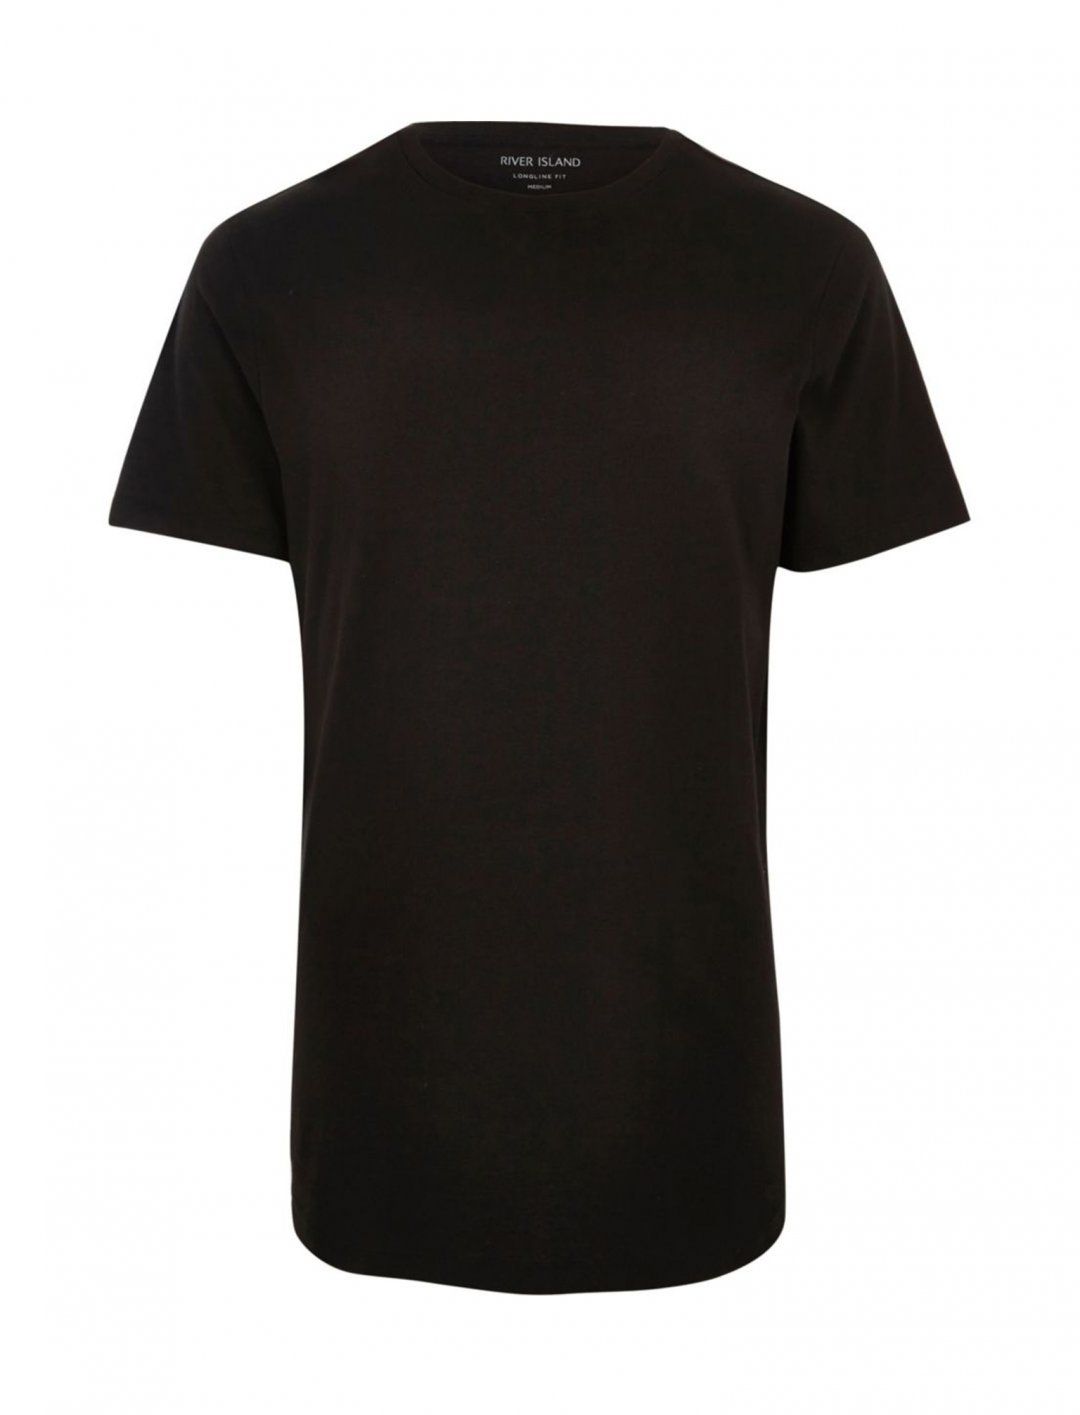 "River Island Black T-Shirt {""id"":5,""product_section_id"":1,""name"":""Clothing"",""order"":5} River Island"